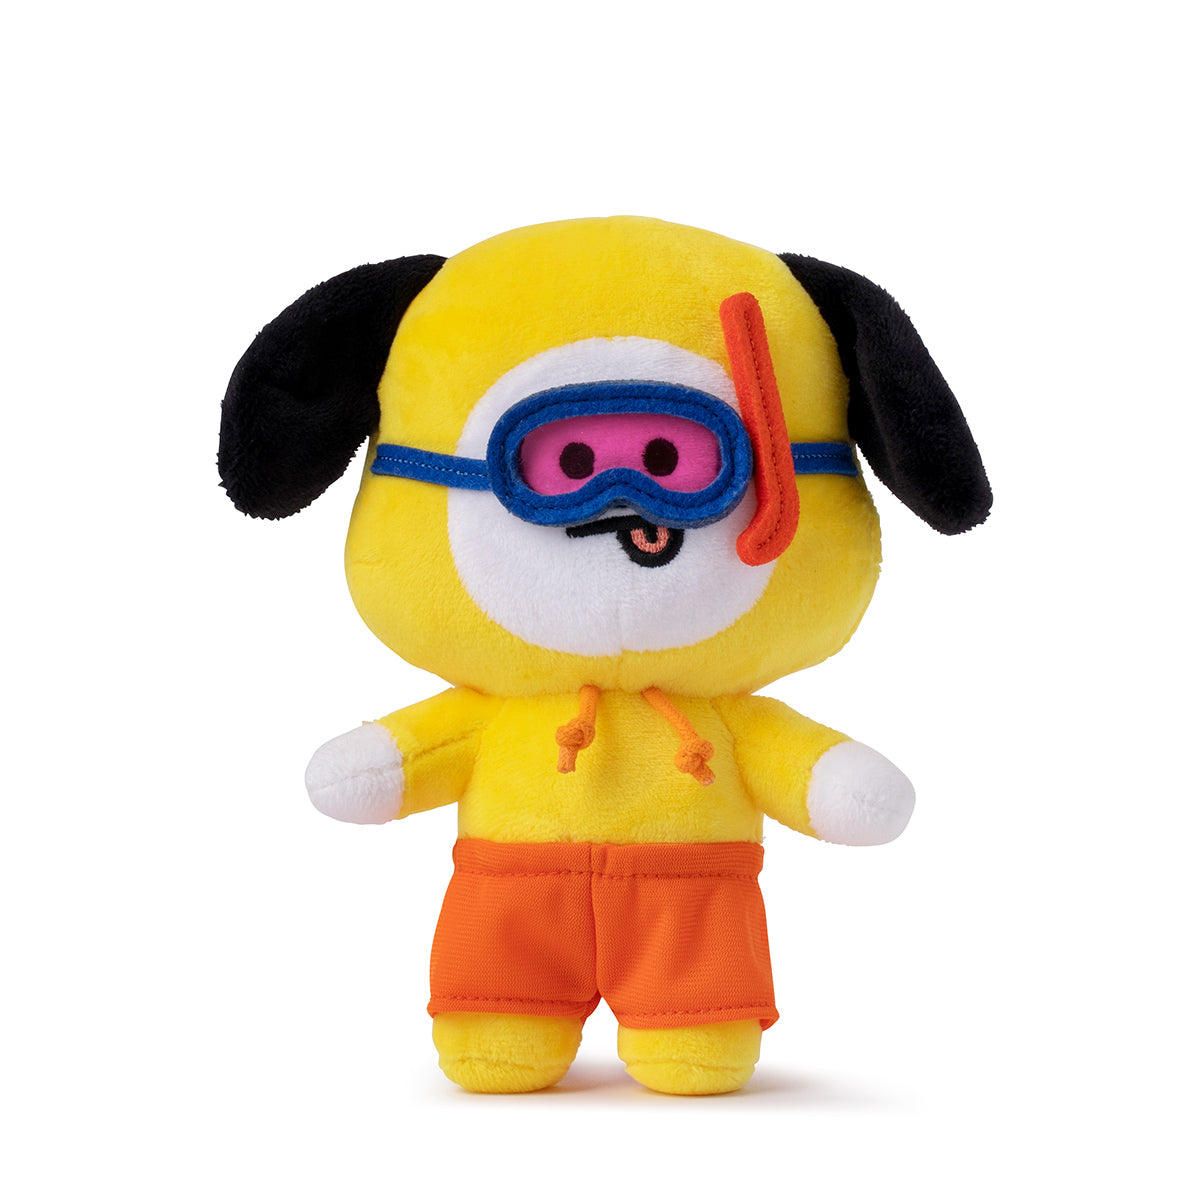 BT21 CHIMMY Bon Voyage Standing Plush 6""